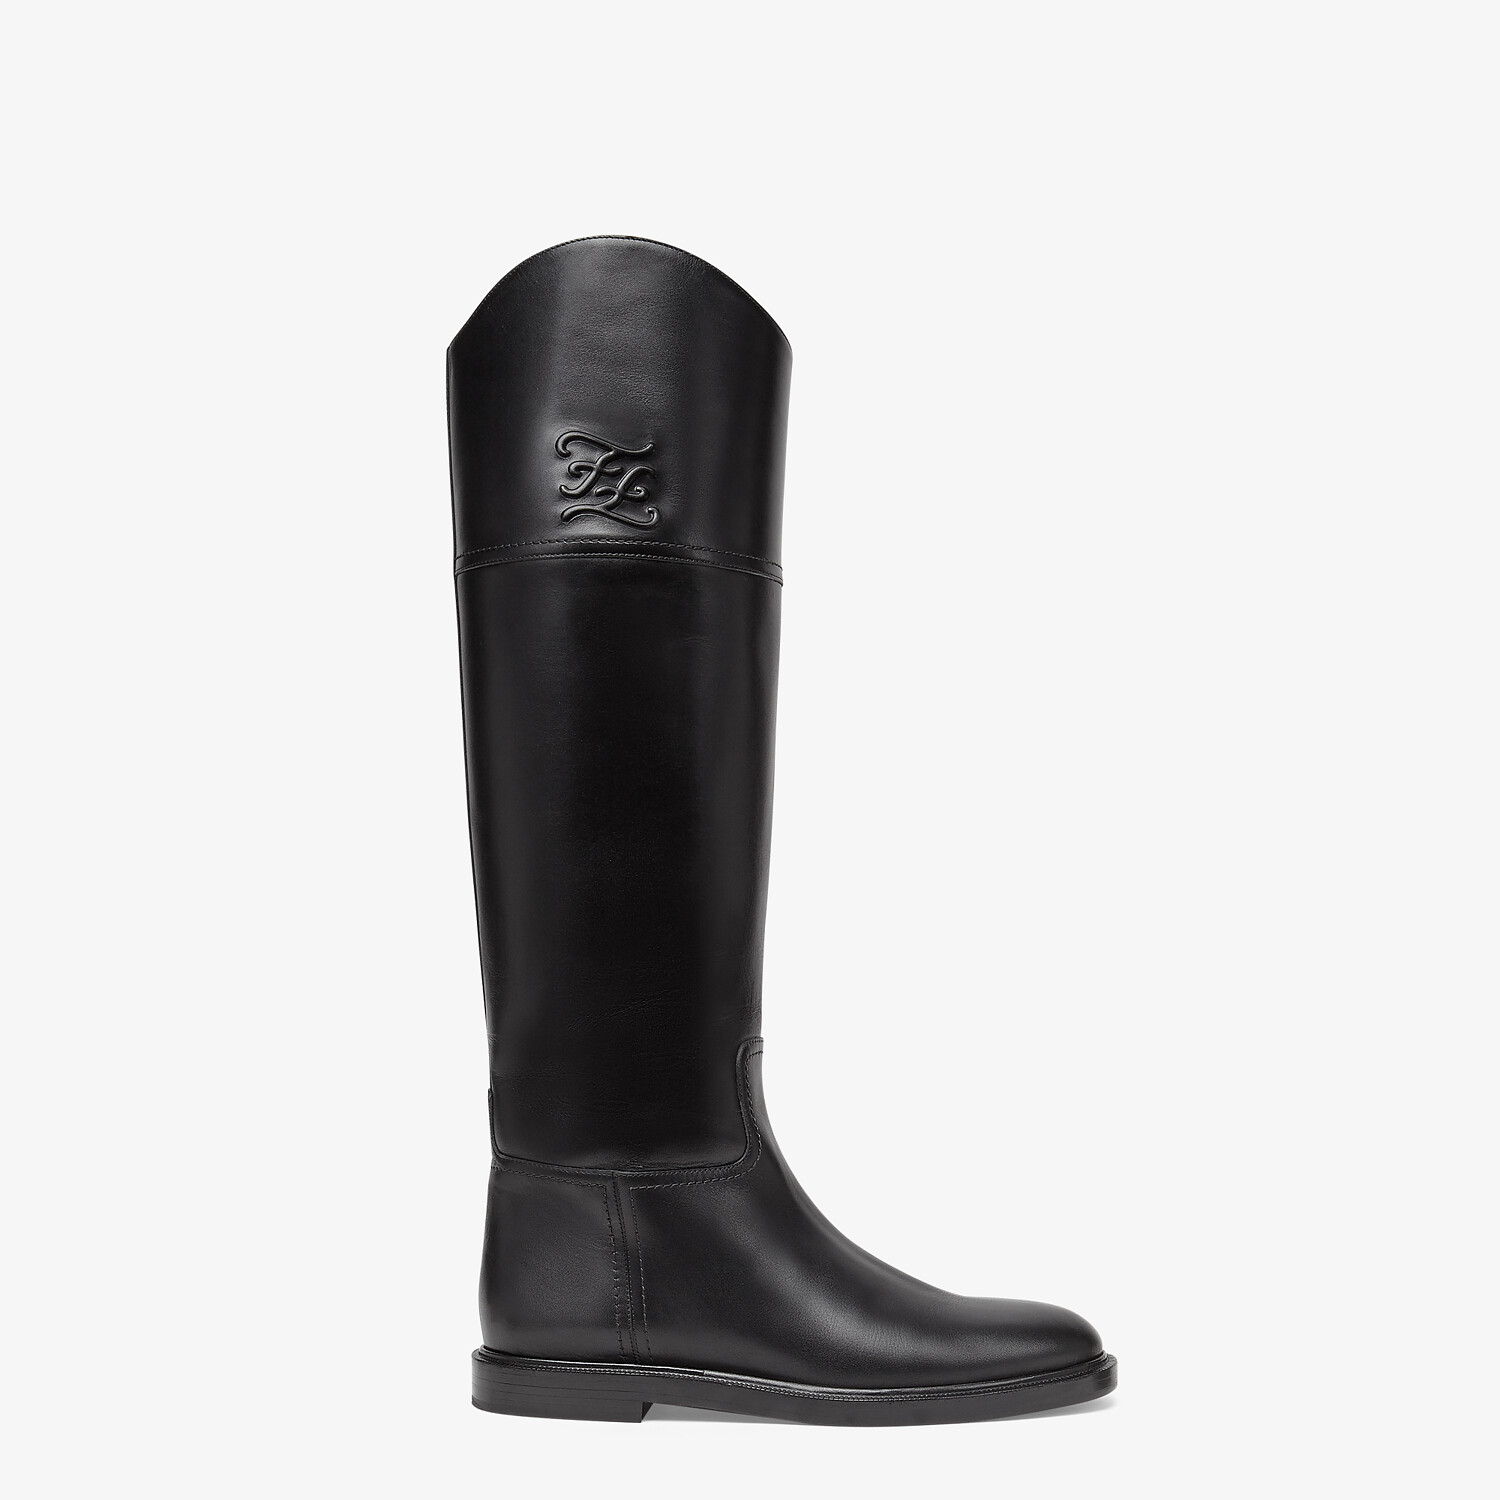 FENDI KARLIGRAPHY - Black leather boots - view 1 detail